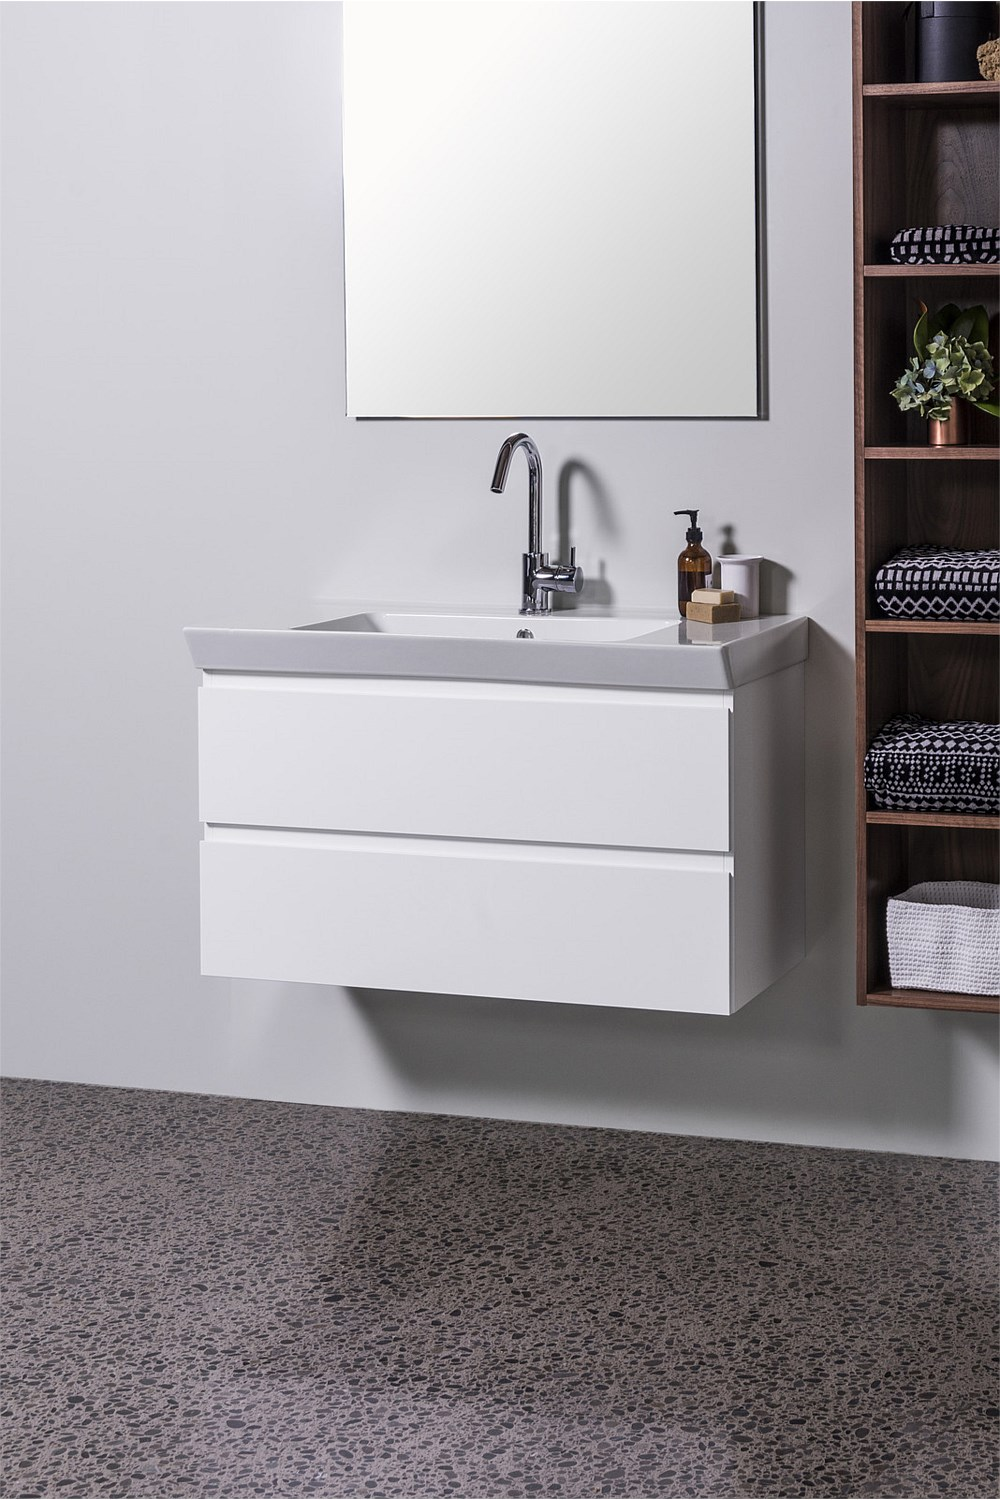 Vanities And Storage Michel Cesar Edge 910mm Wall Hung